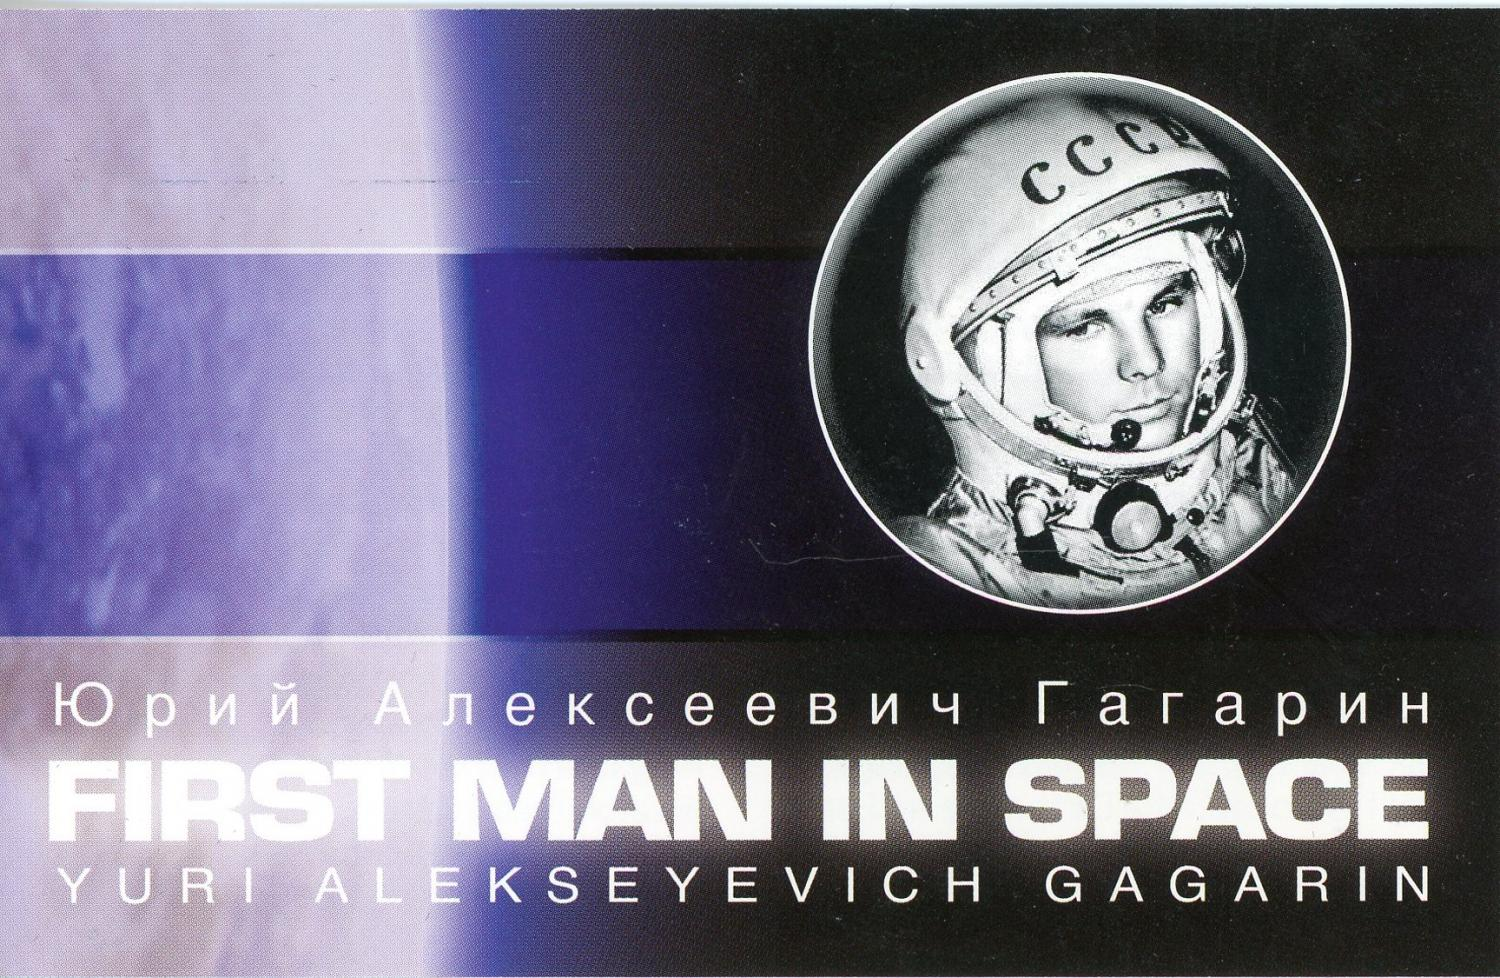 Thumbnail for 2008 First Man in Space 1 oz silver Coin - Cook Islands